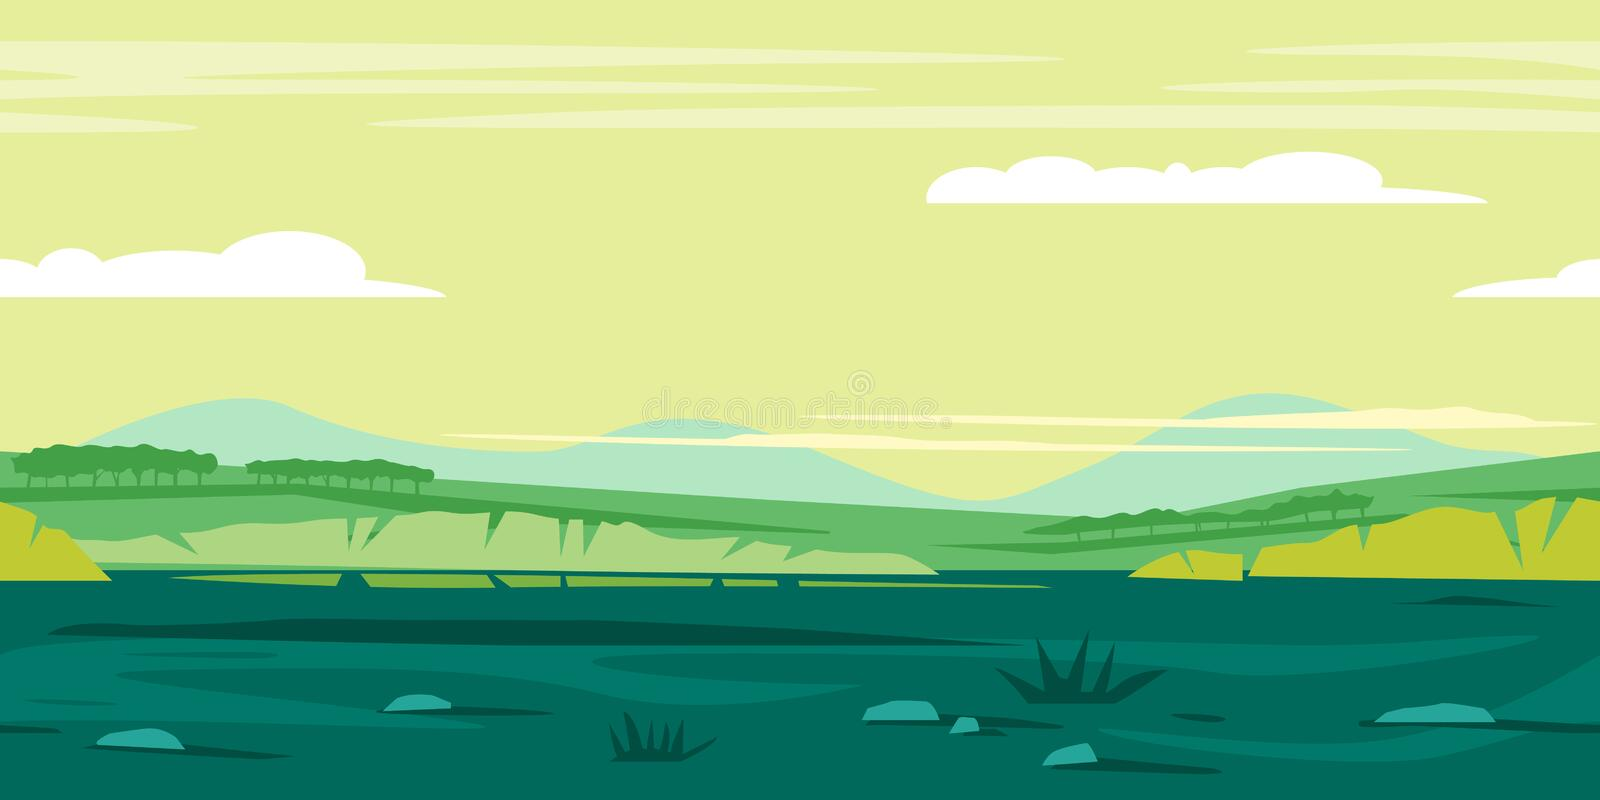 Meadows Game Background Landscape vector illustration